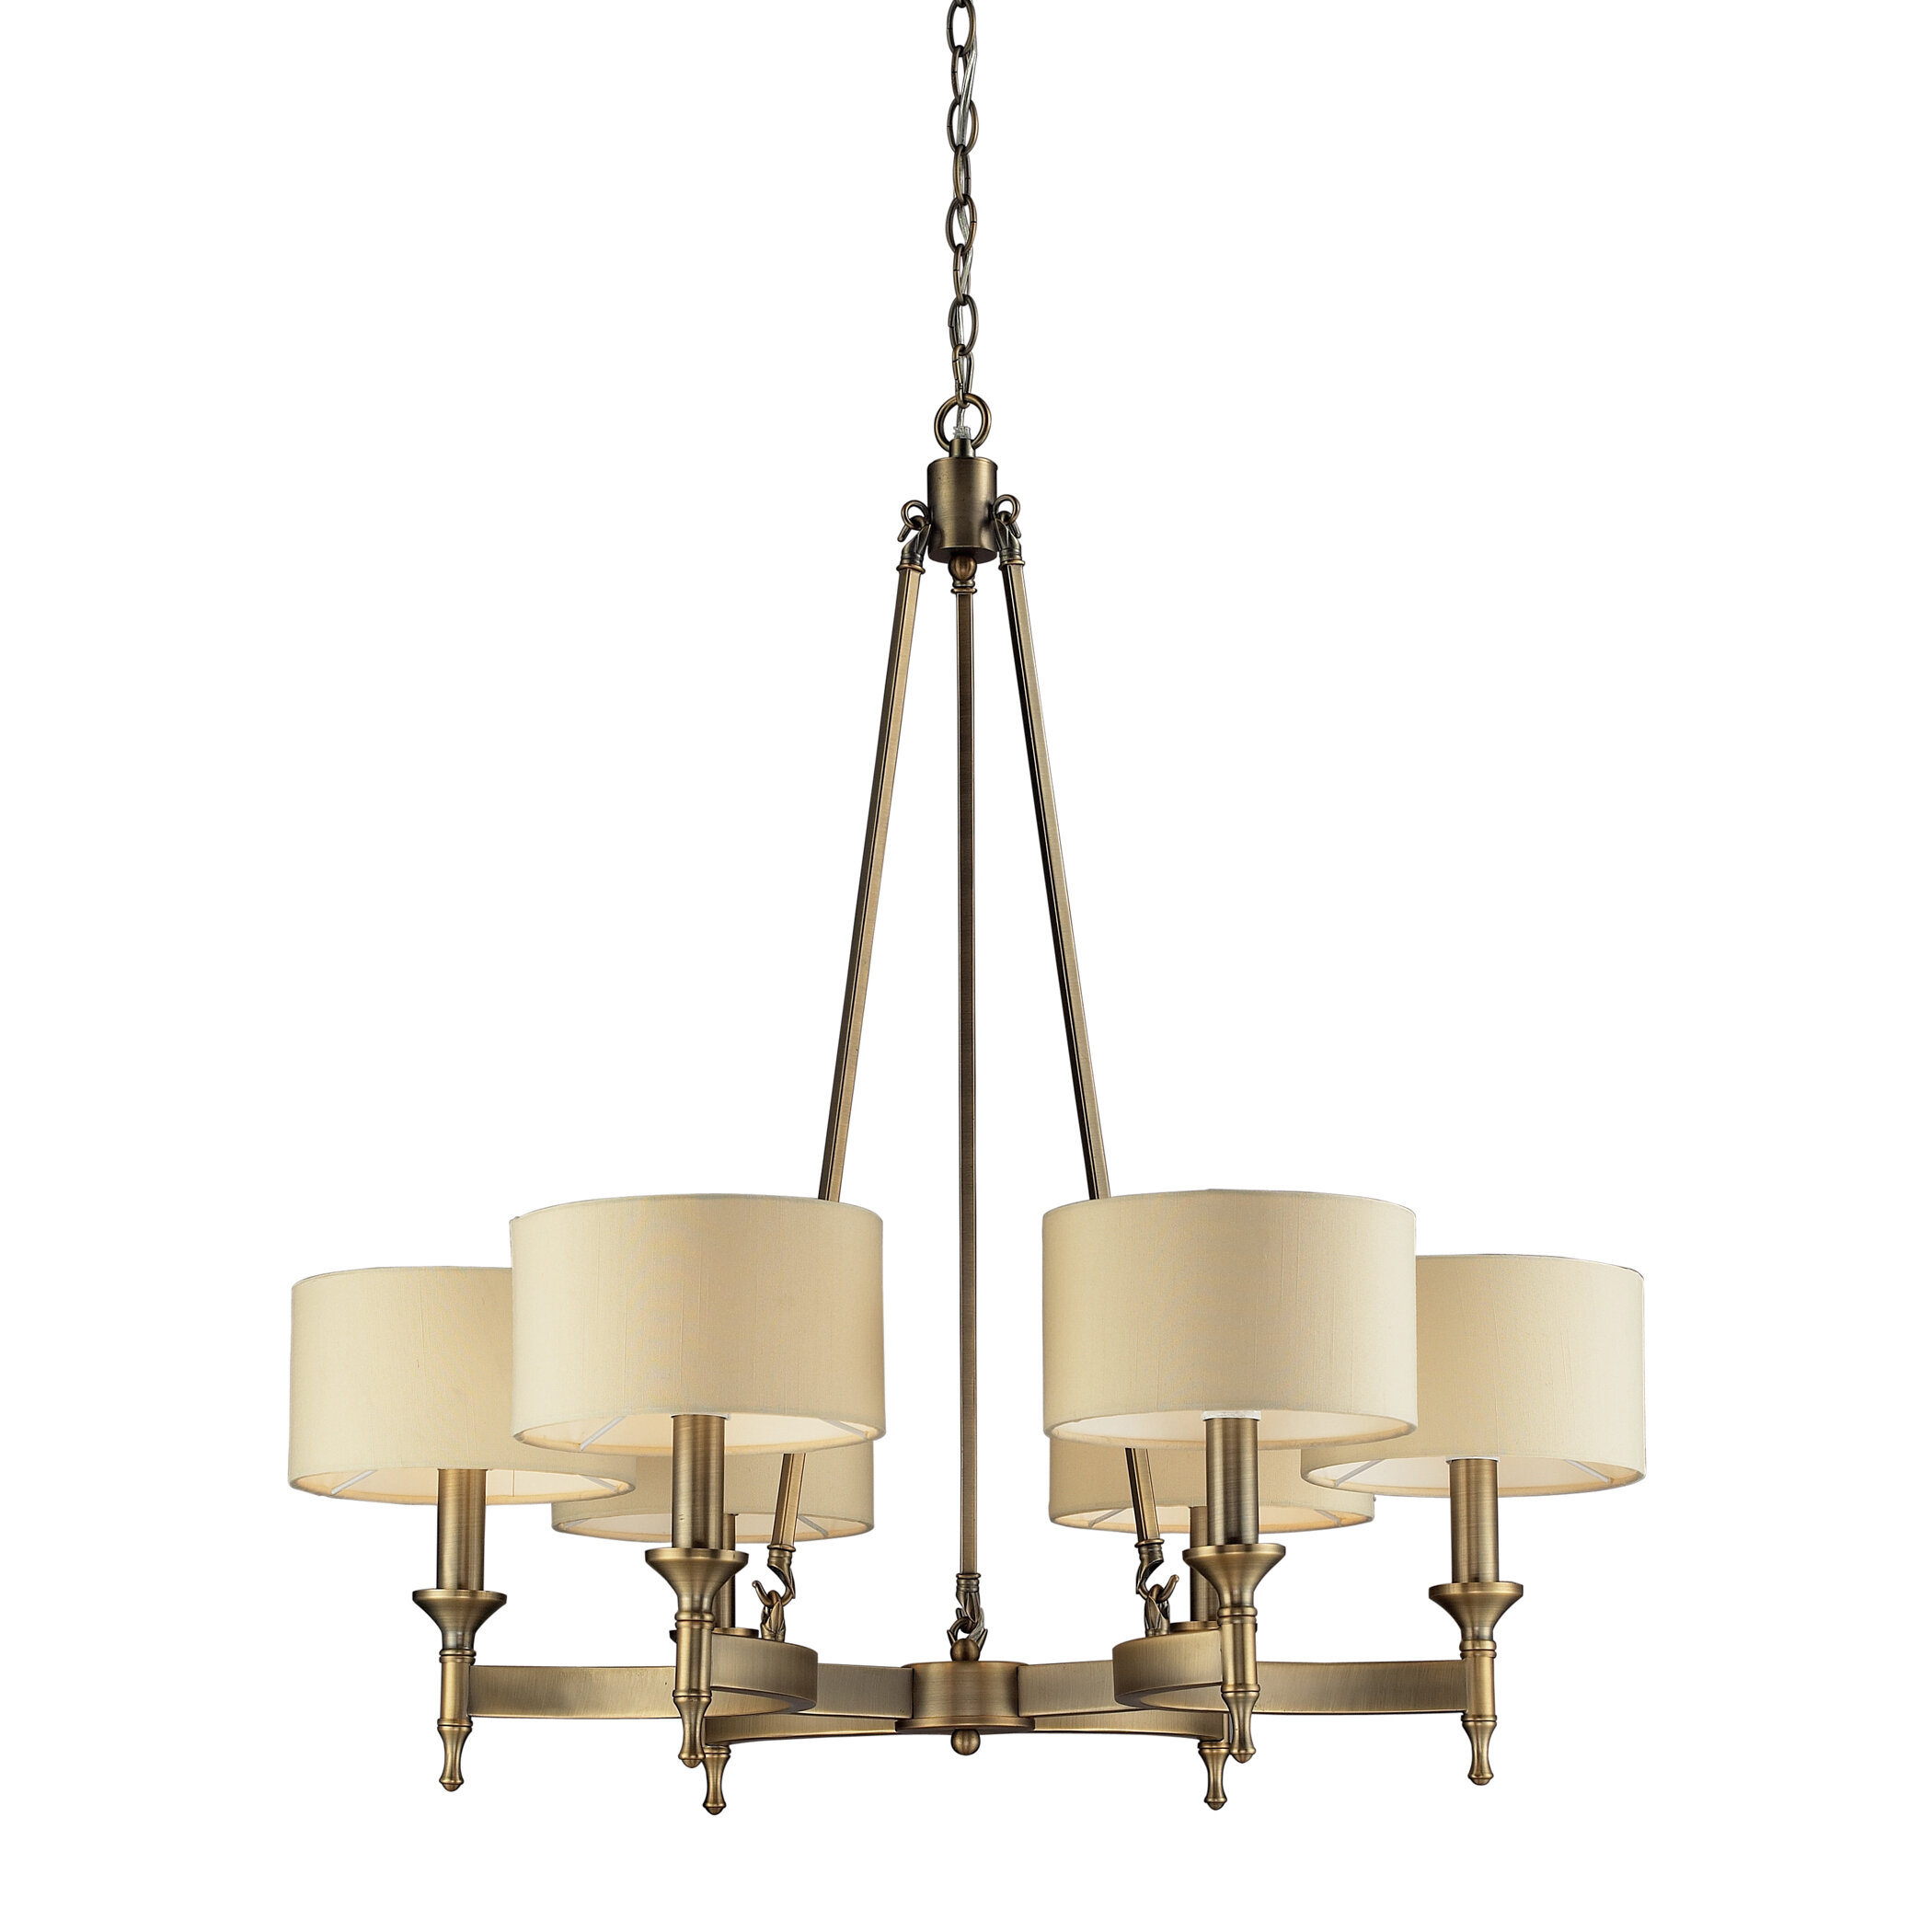 6 Light Drum Chandelier By Elk Lighting